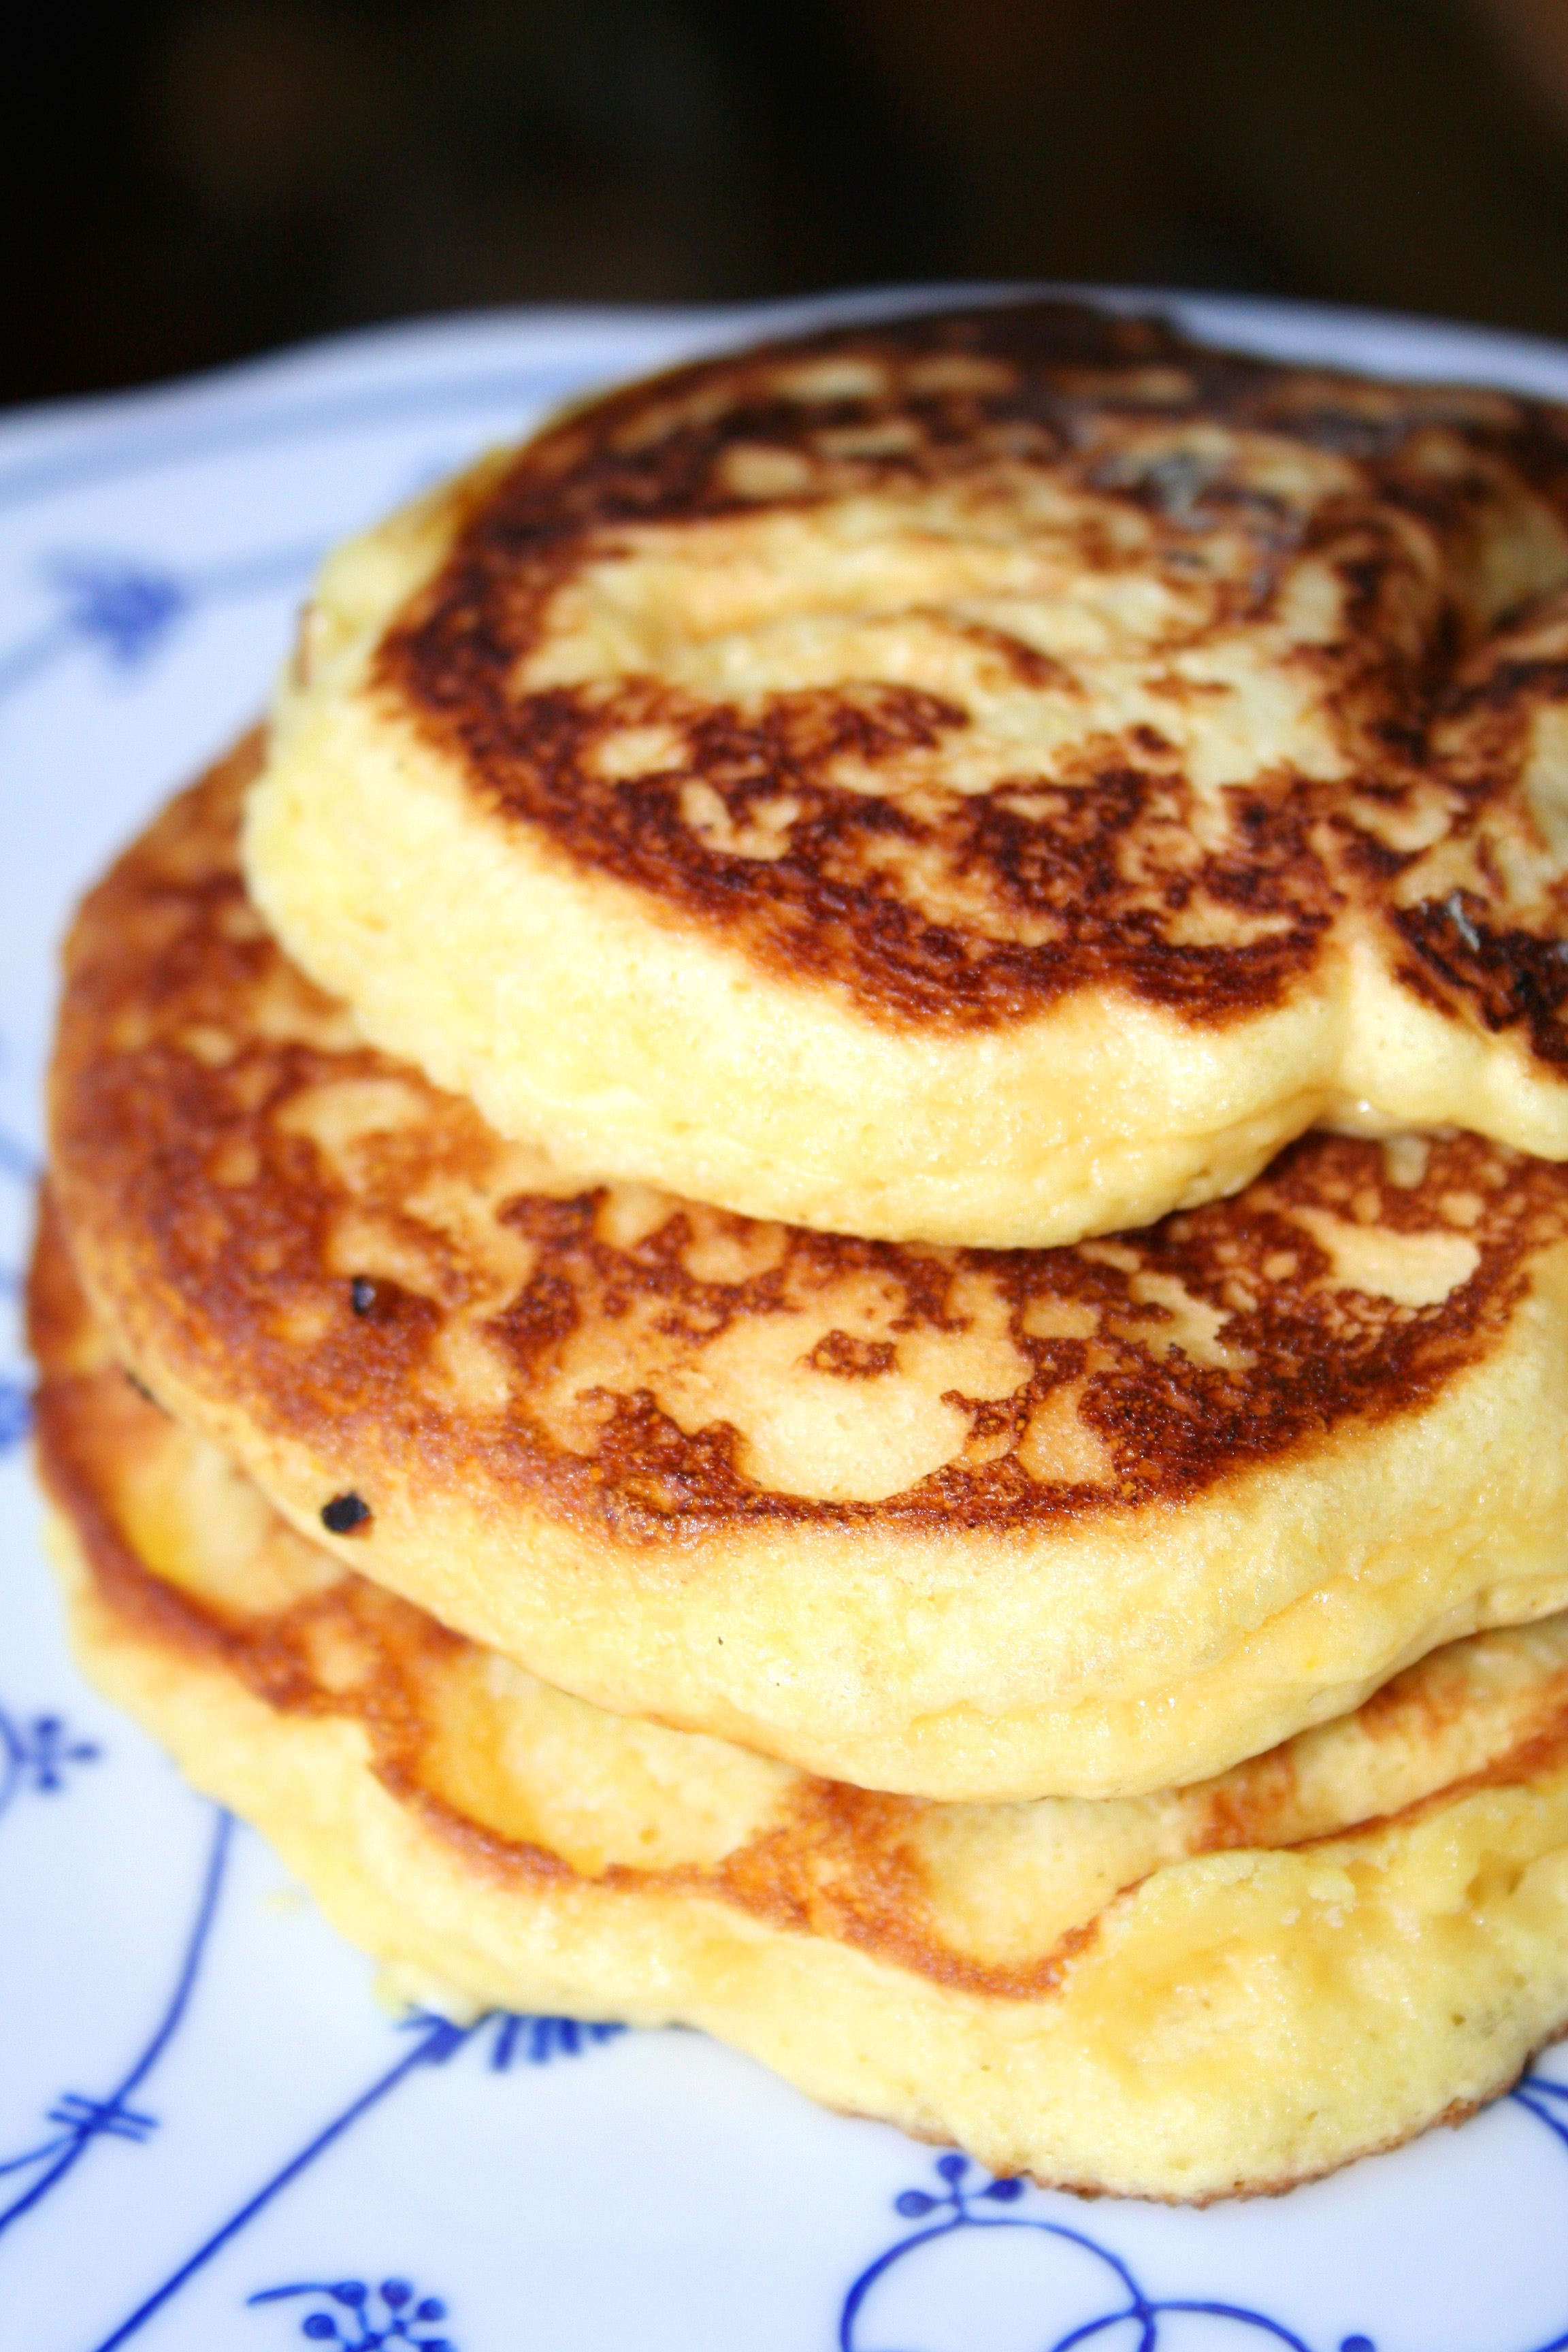 Finished pancakes in a stack